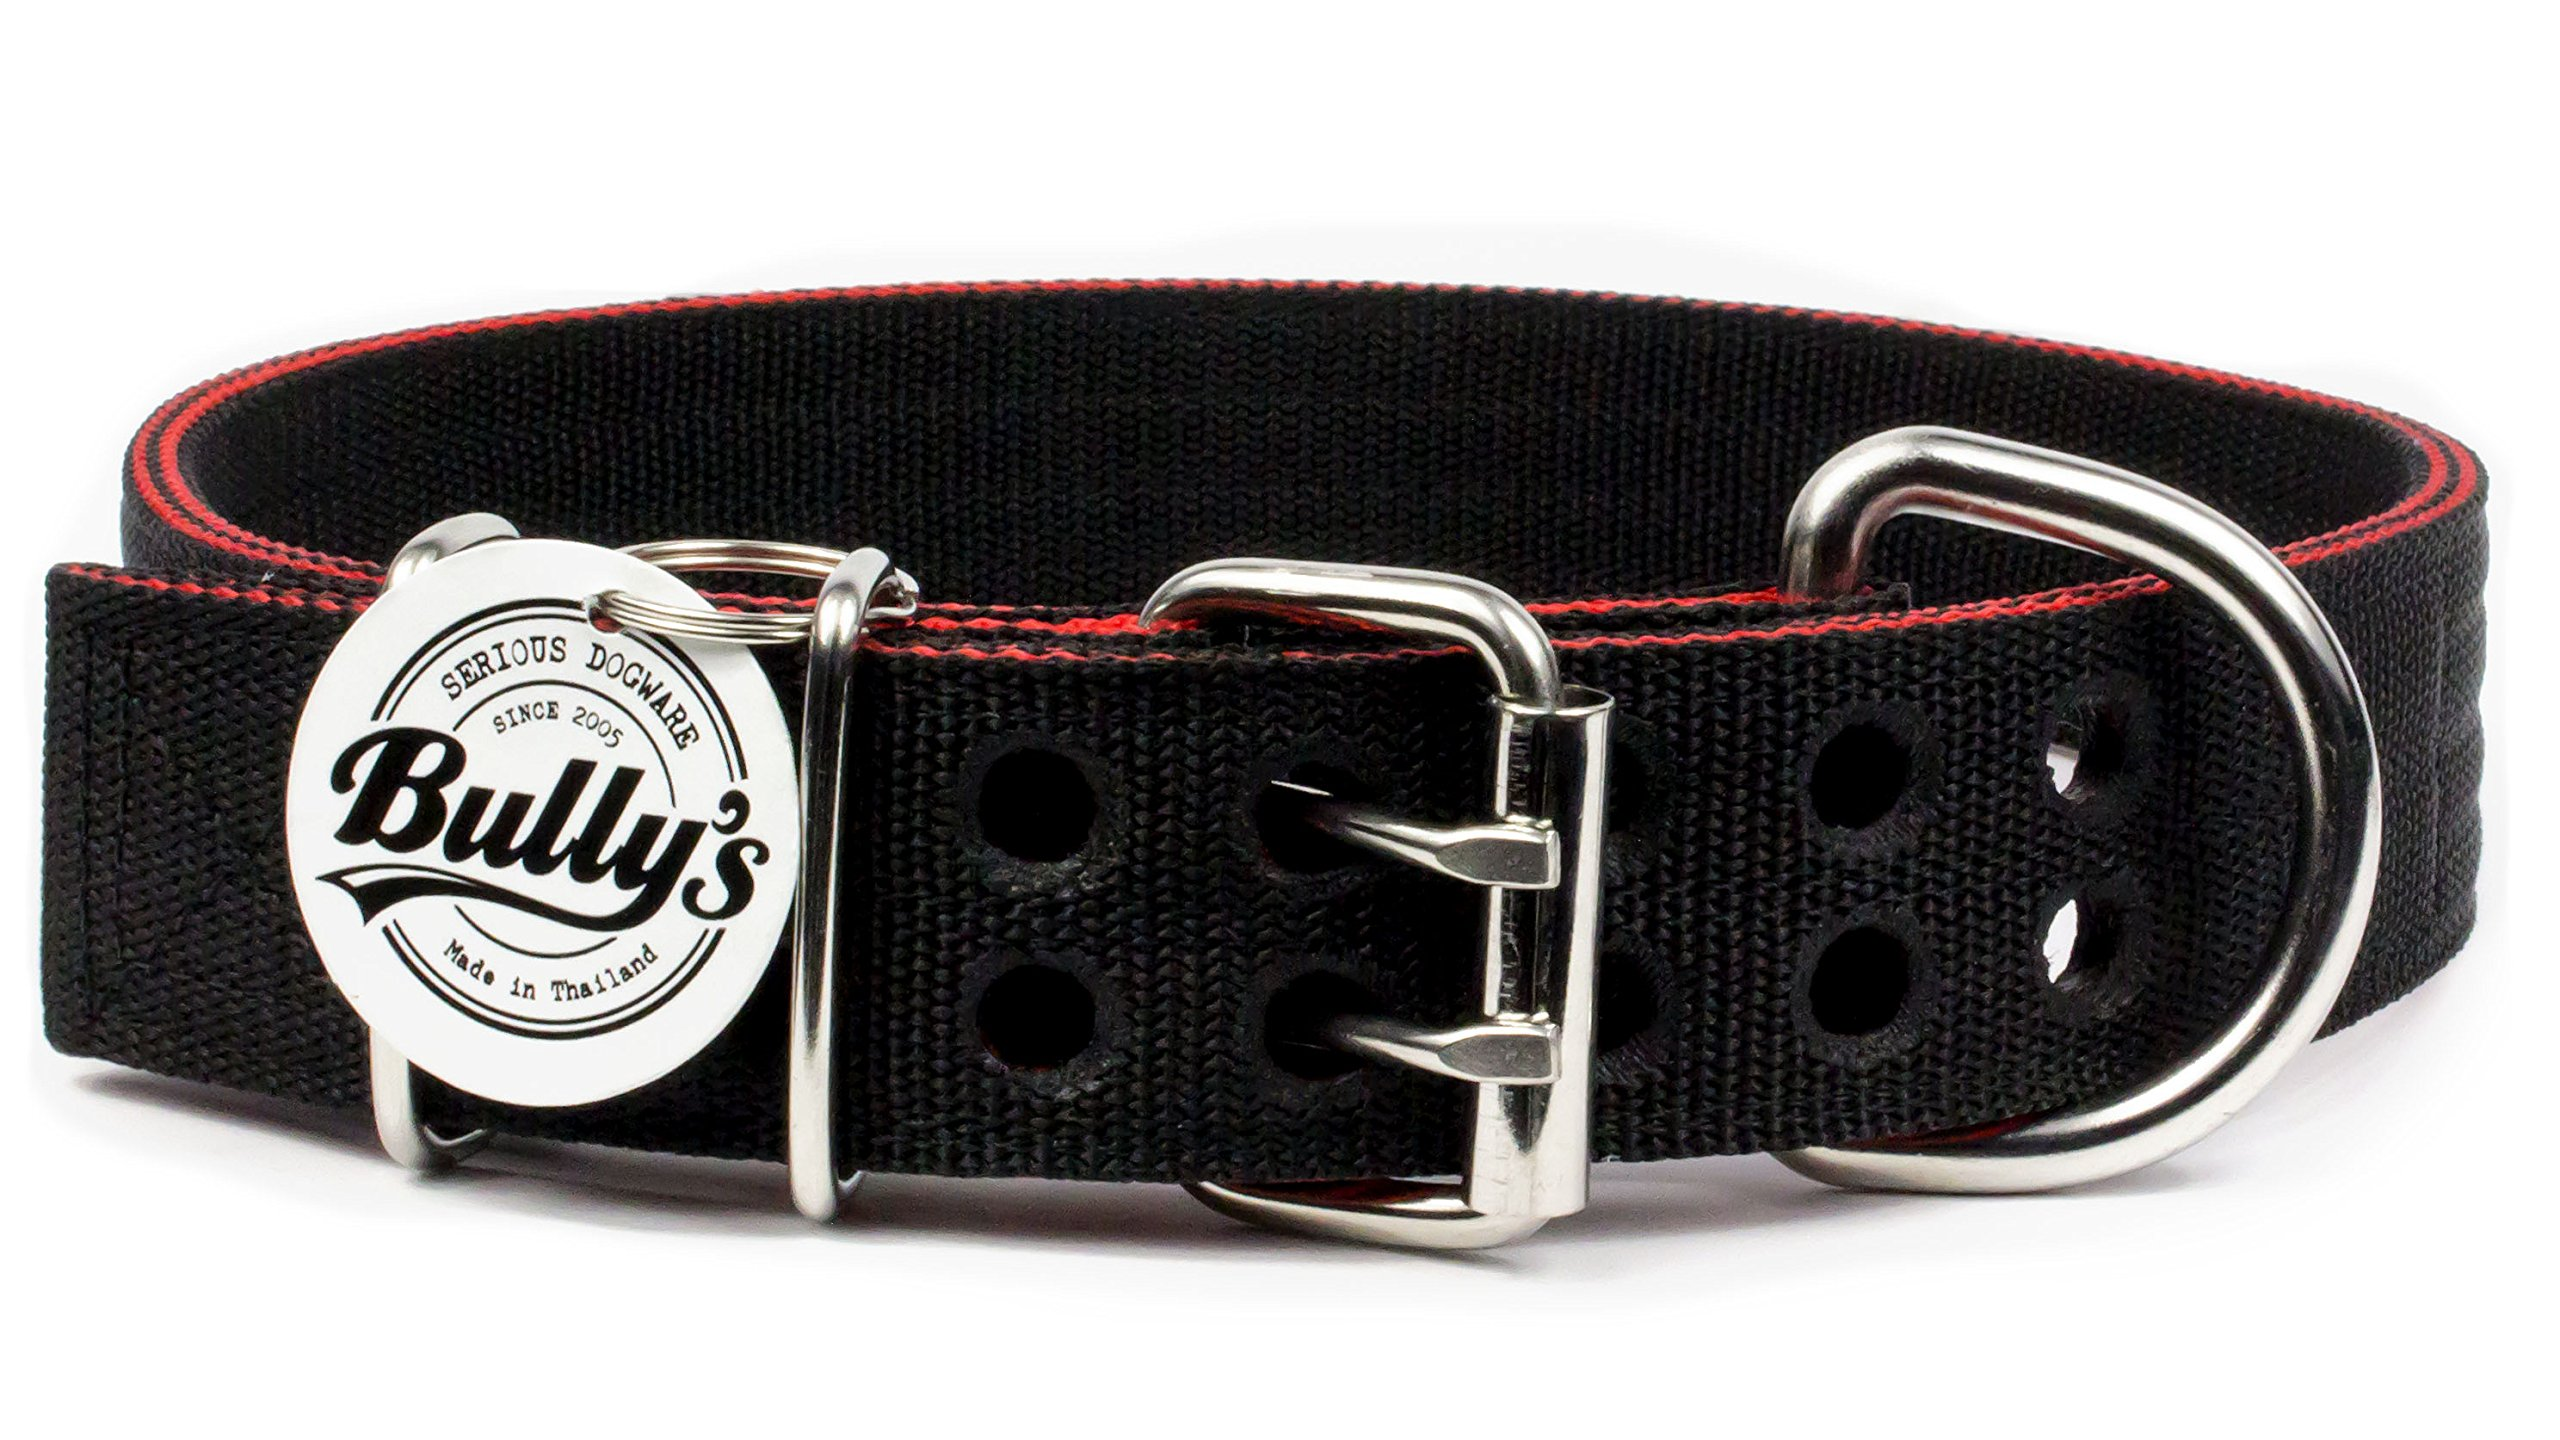 Pitbull Collar, Dog Collar for Large Dogs, Heavy Duty Nylon, Stainless Steel Hardware (Medium, Black with Red Trim)